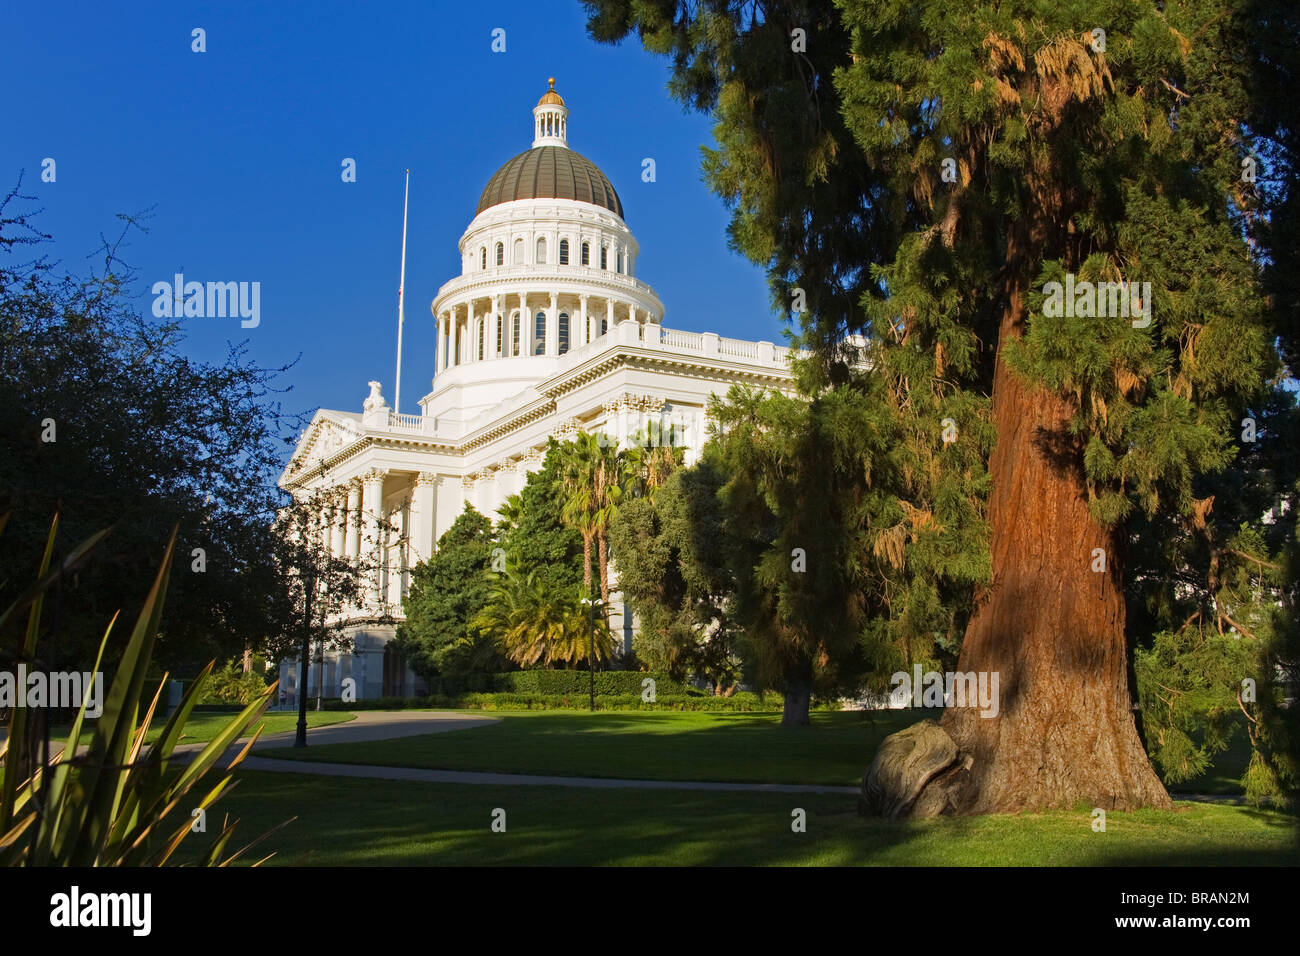 Redwood tree and the State Capitol Building, Sacramento, California, United States of America, North America - Stock Image